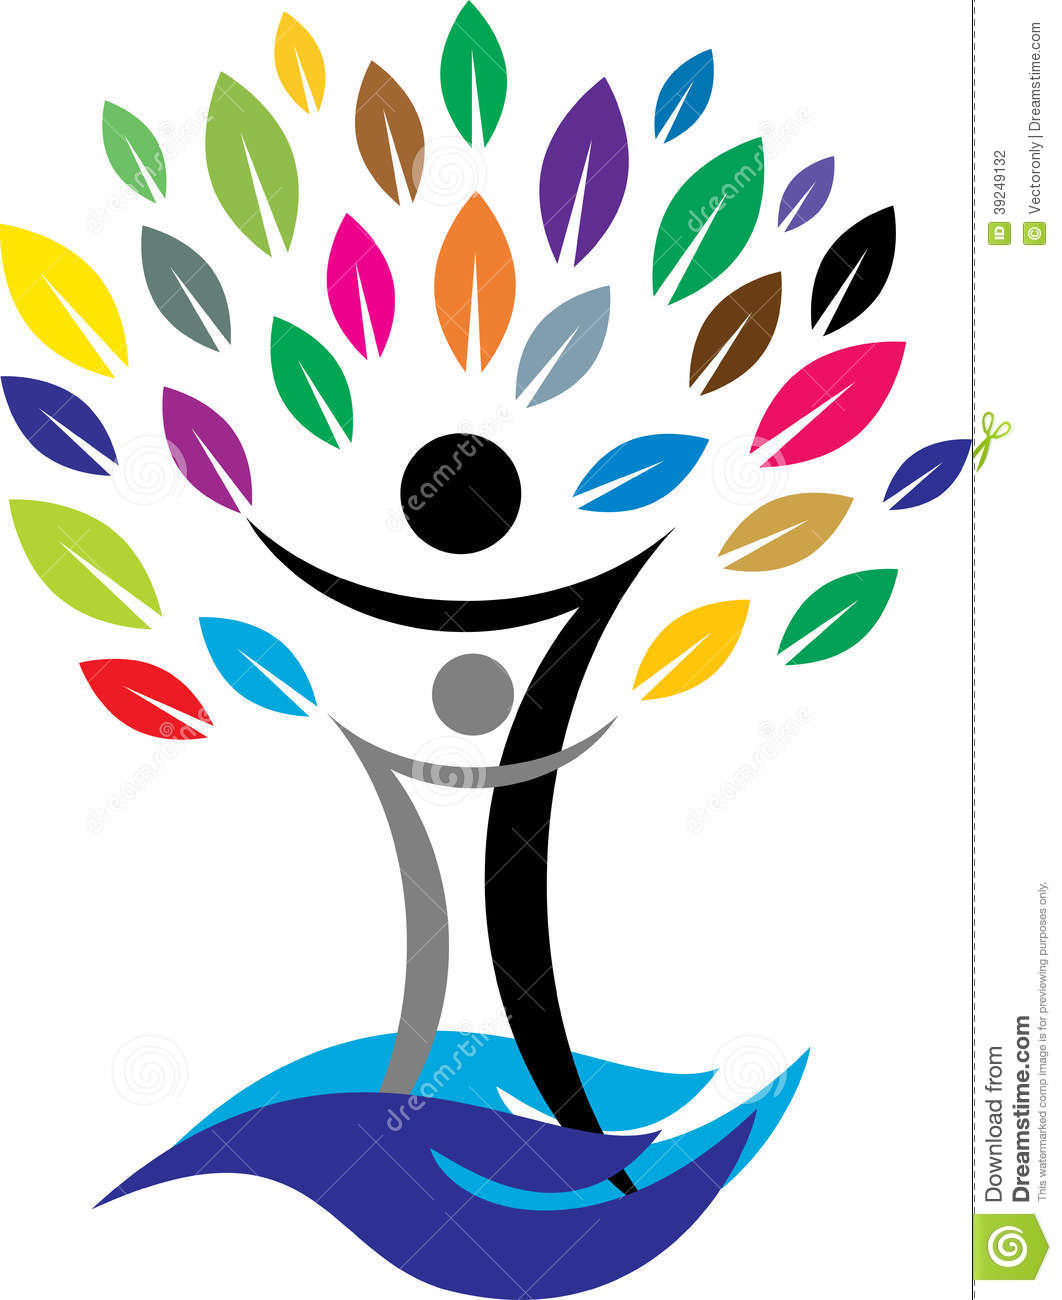 Family Tree Stock Vector - Image: 39249132